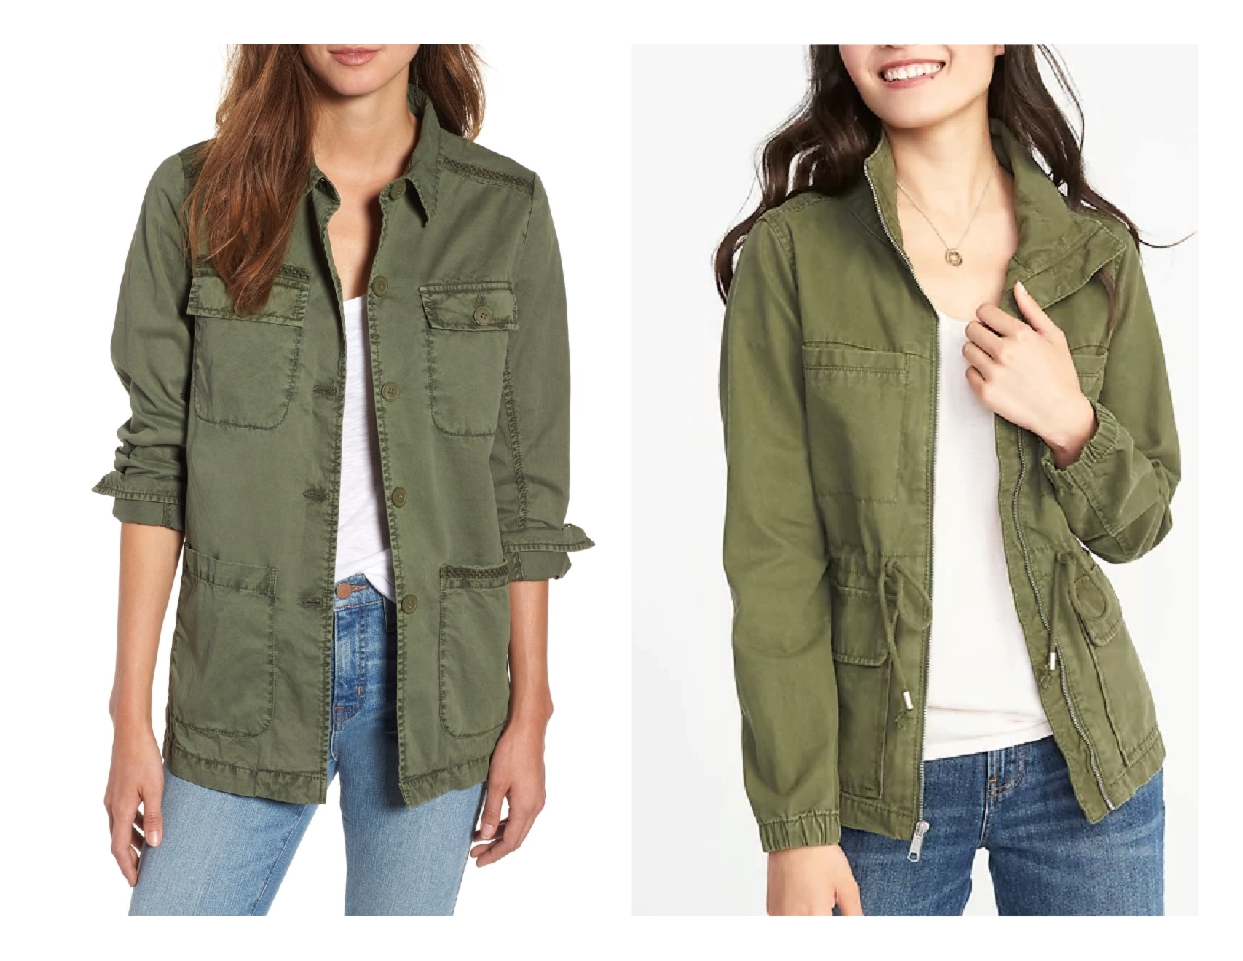 nordstrom anniversary sale dupes, utility jacket